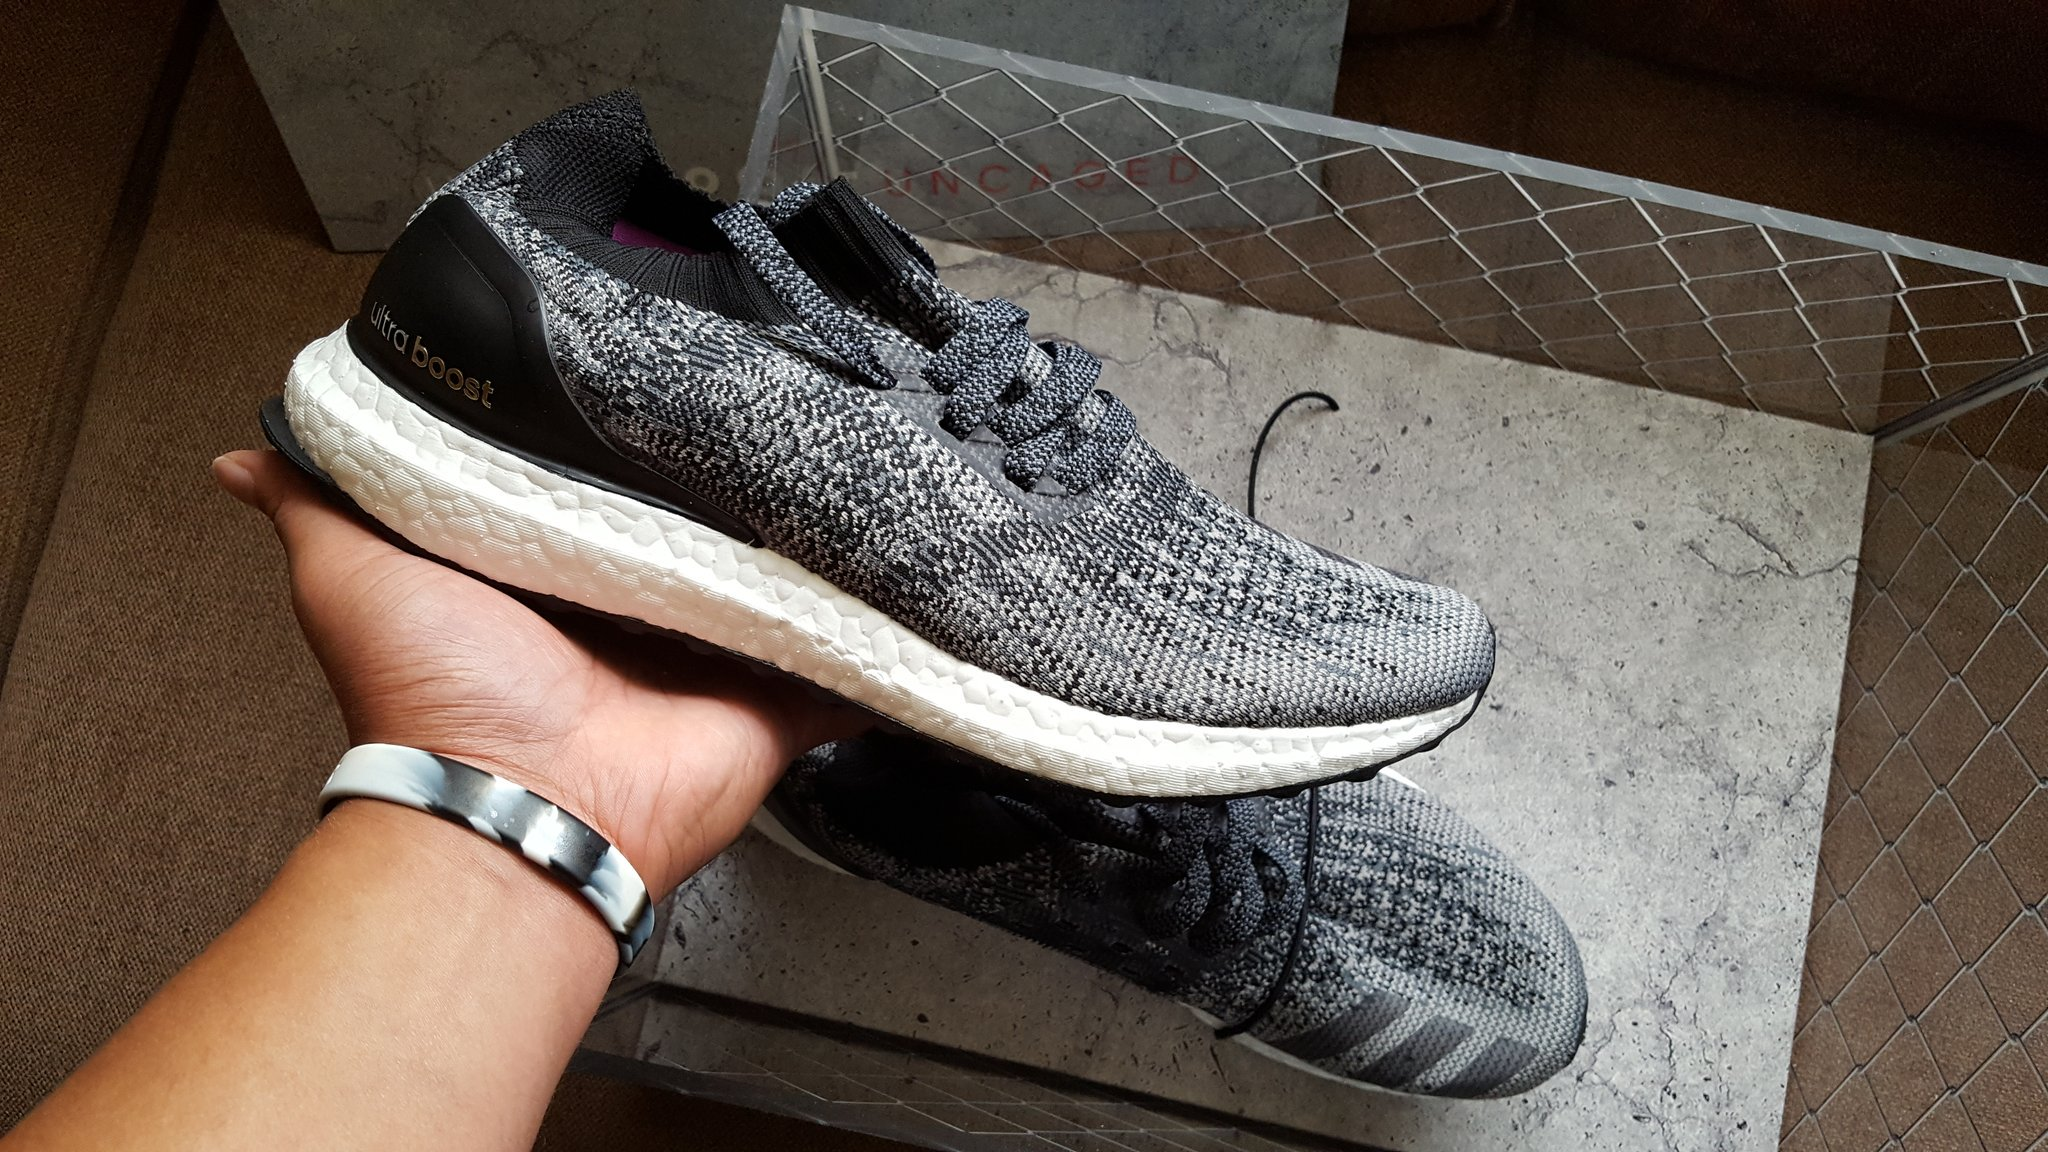 270c7abb2 Special Delivery  The adidas UltraBOOST Uncaged - Hardwood and Hollywood